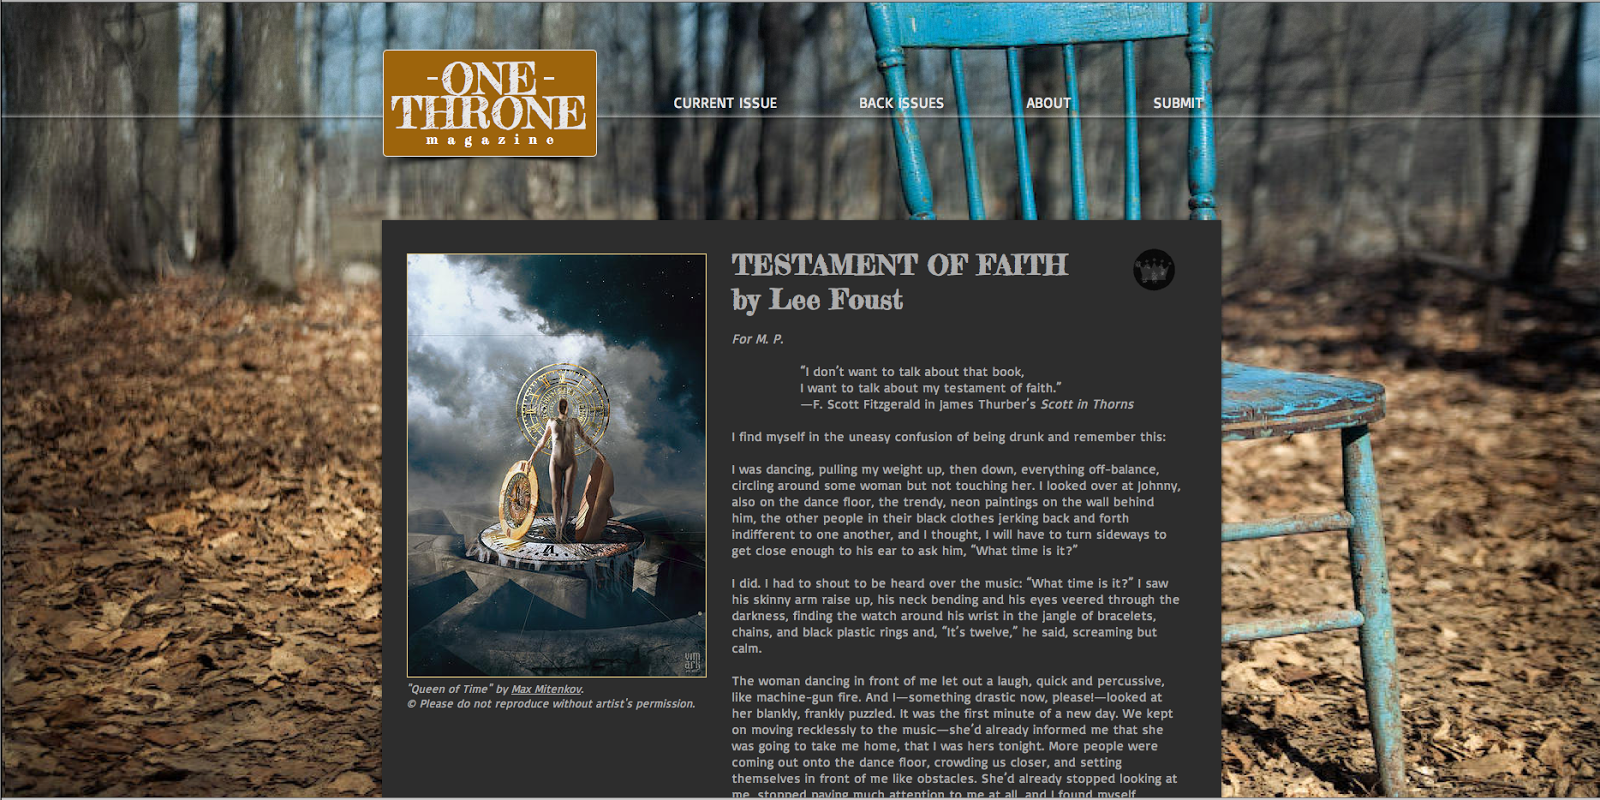 http://www.onethrone.com/#!testament-of-faith/c17m